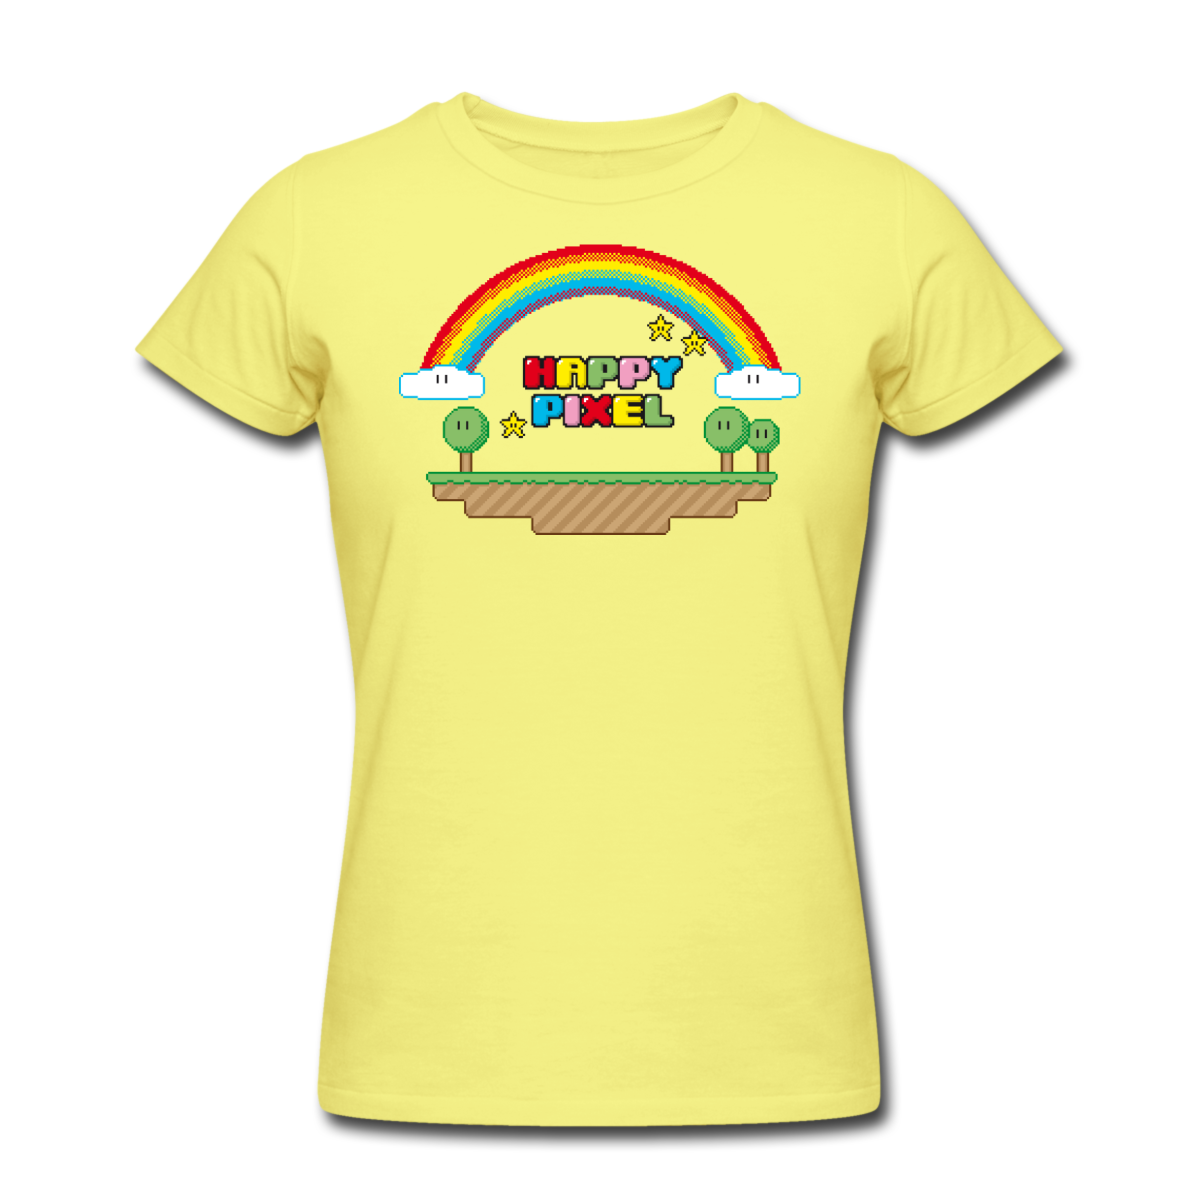 Design your own t shirt american apparel - This Happy Pixel T Shirt Is Printed On A T Shirt And Designed By Available In Many Sizes And Colours Buy Your Own T Shirt With A Happy Pixel Design At